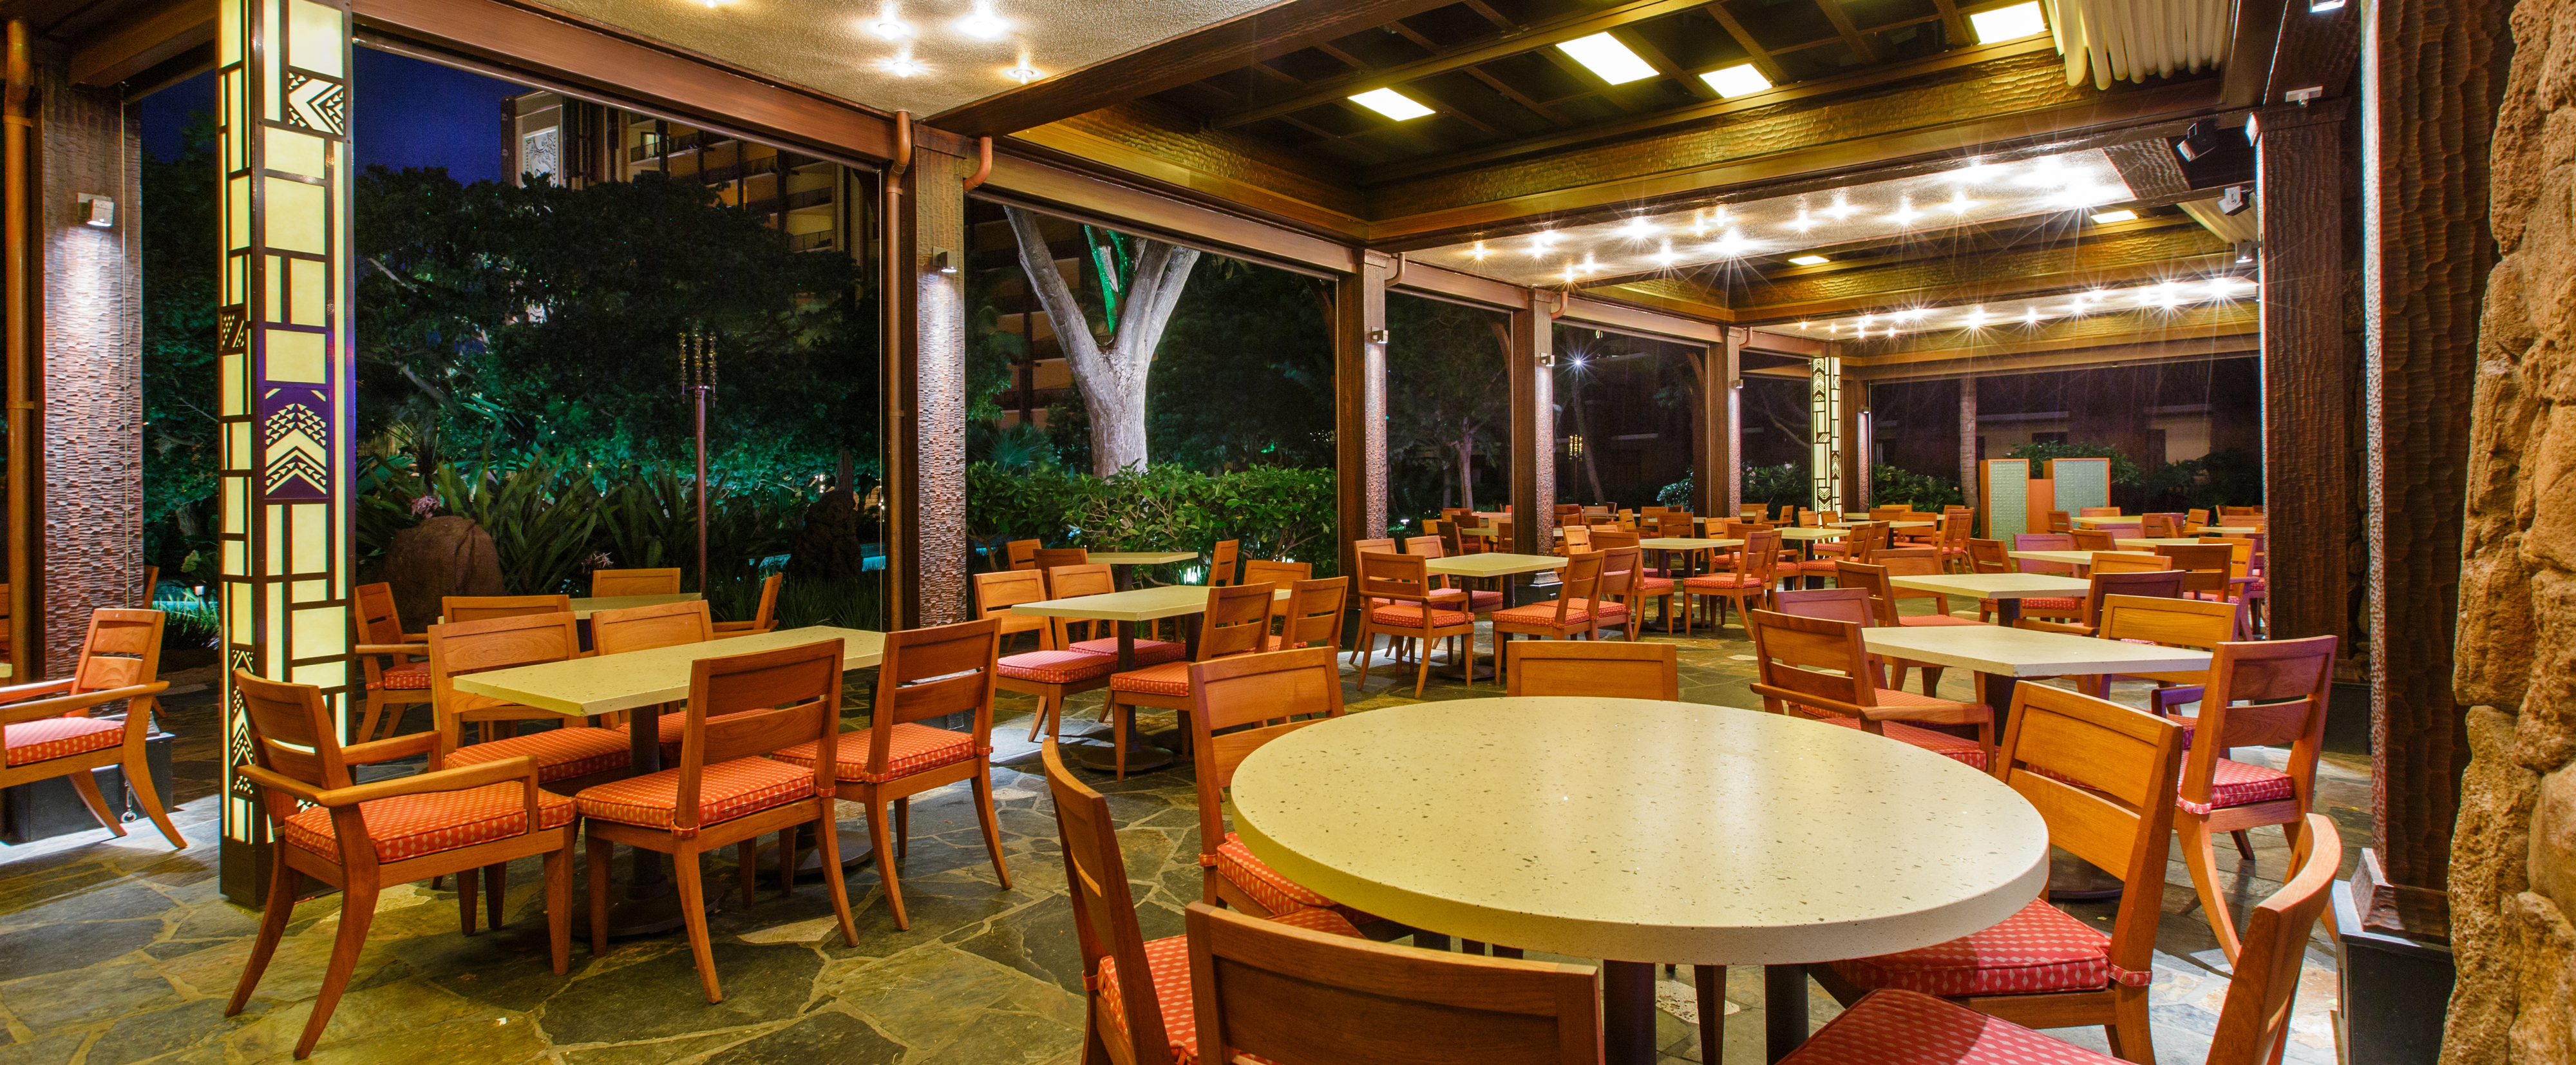 ... Tables On A Large Covered Patio, Lit Up At Night ...